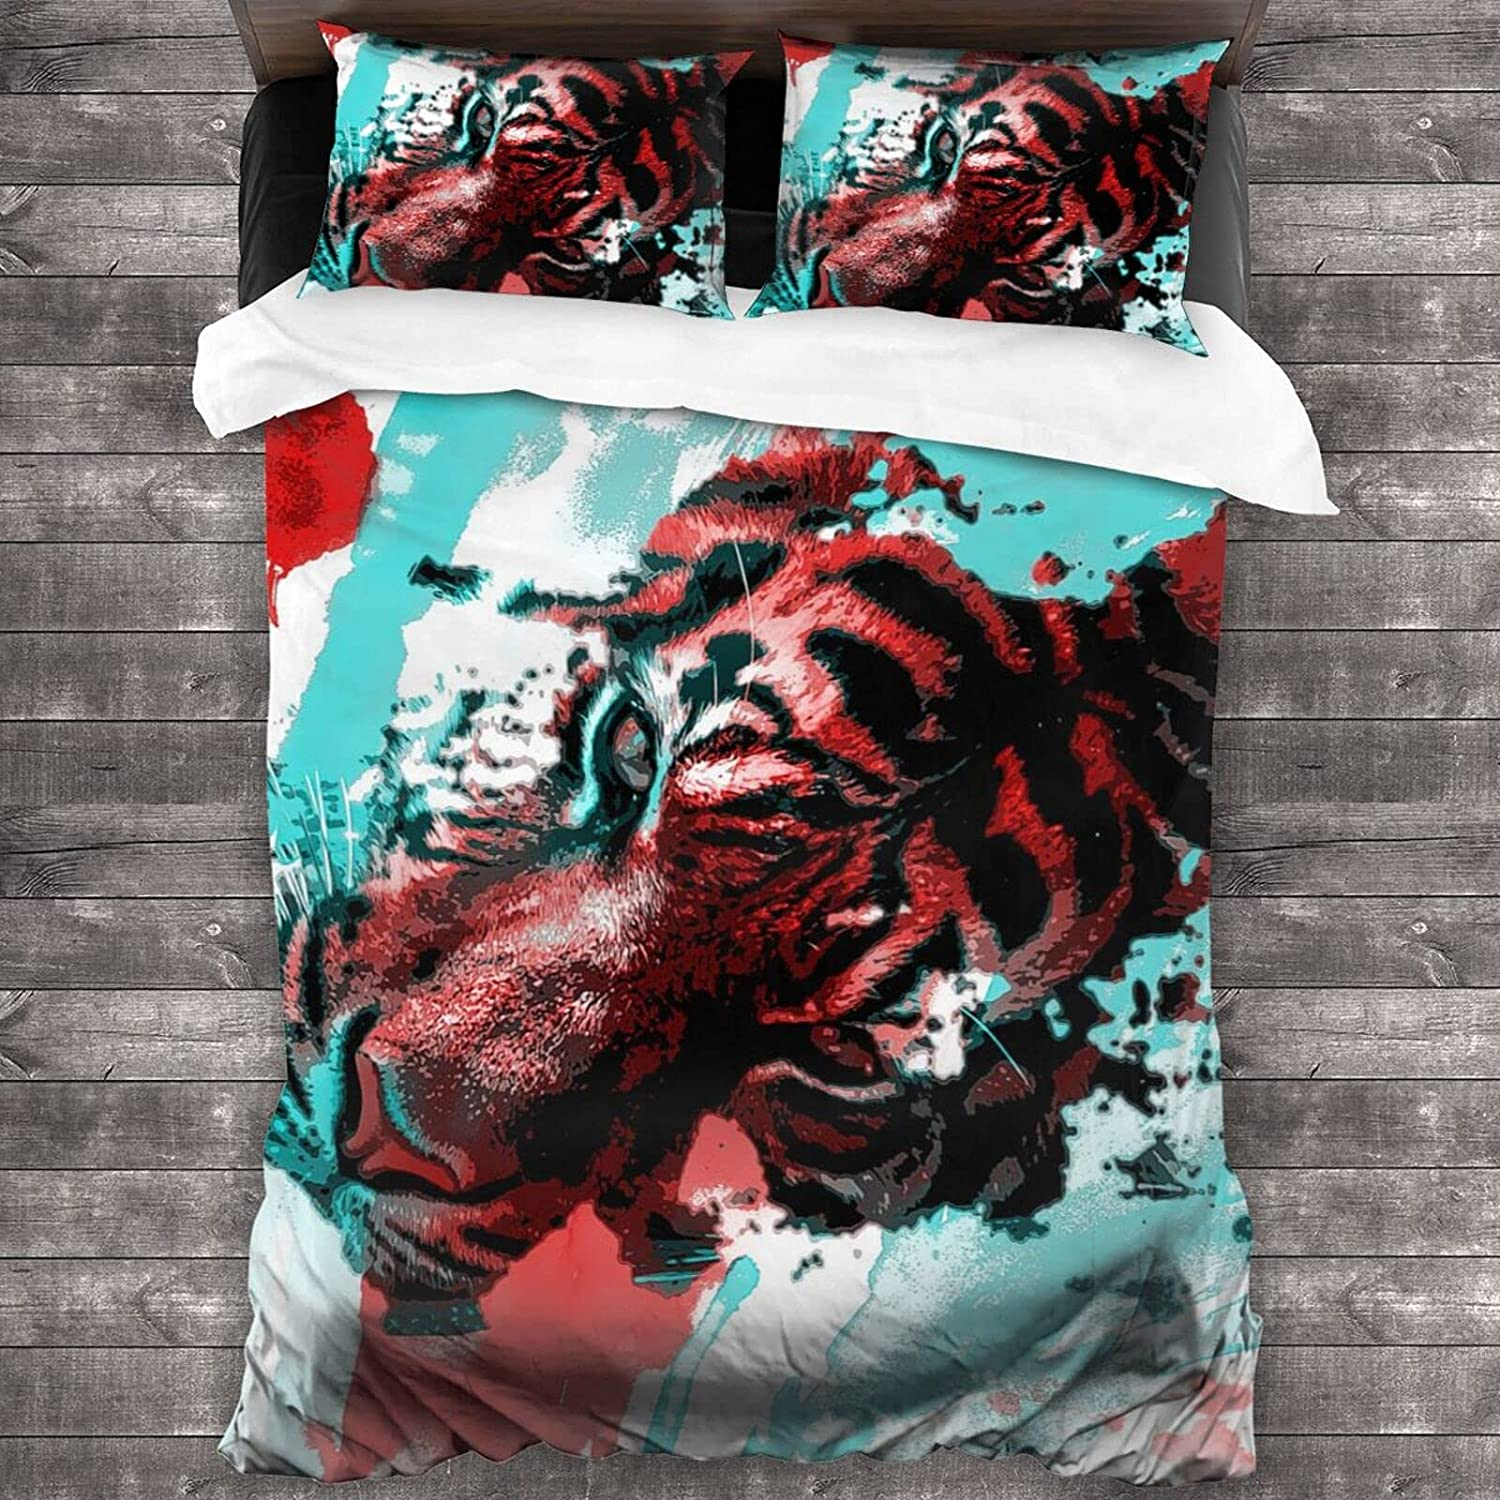 Pssmmal Watercolor Painting Limited time for free shipping Tiger 3 Outlet sale feature Bedding Set Comforter Pieces